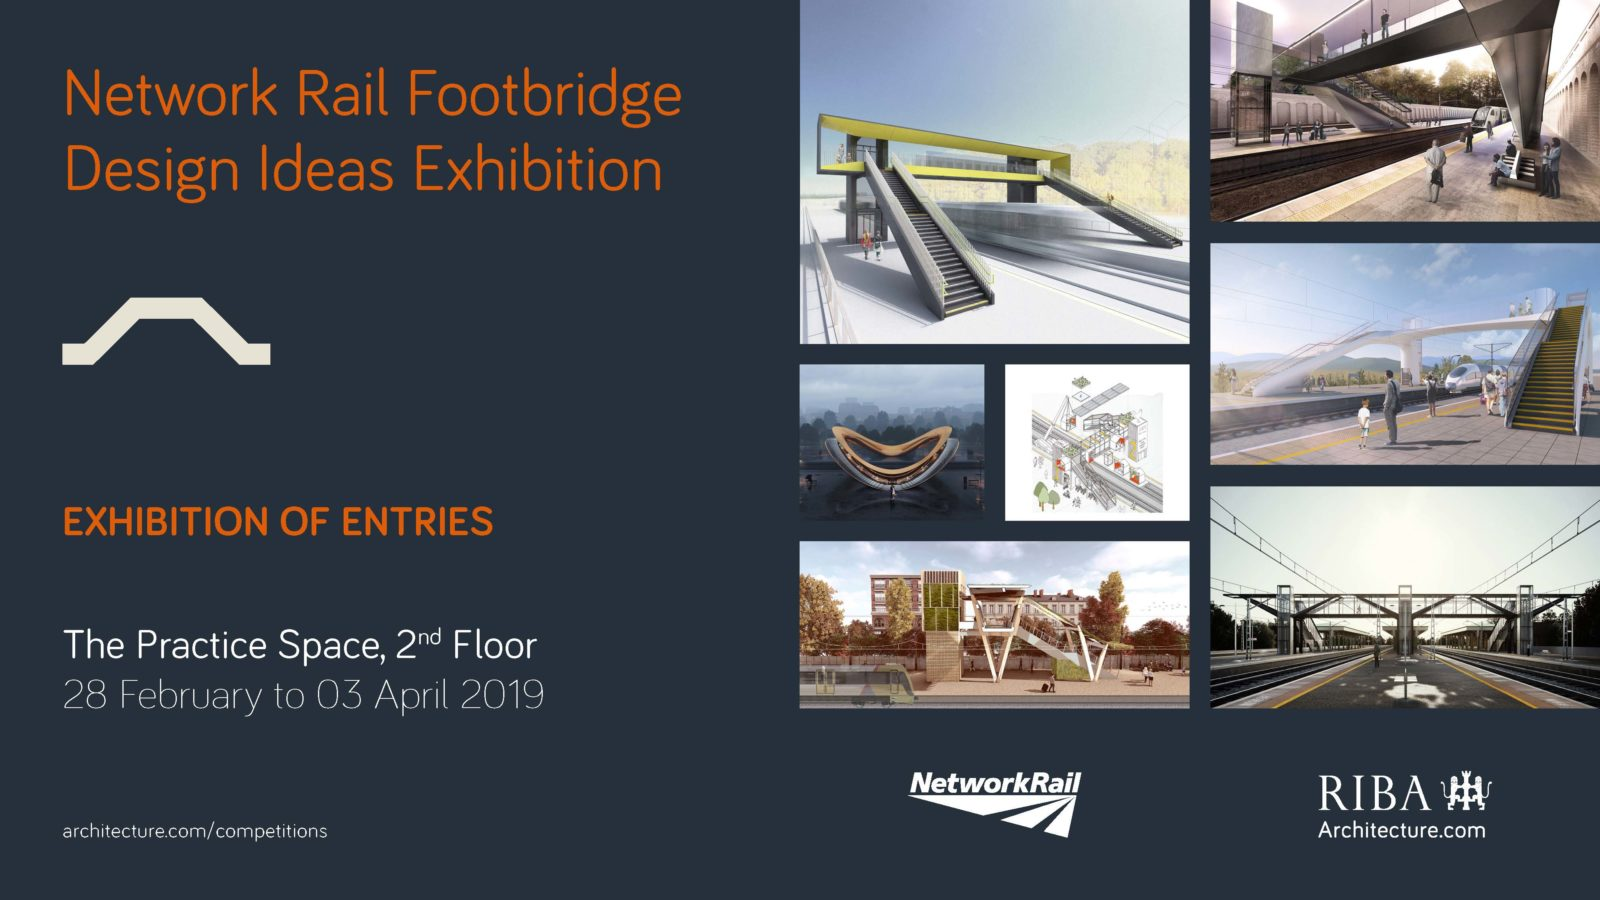 Network Rail Footbridge Designs Exhibition